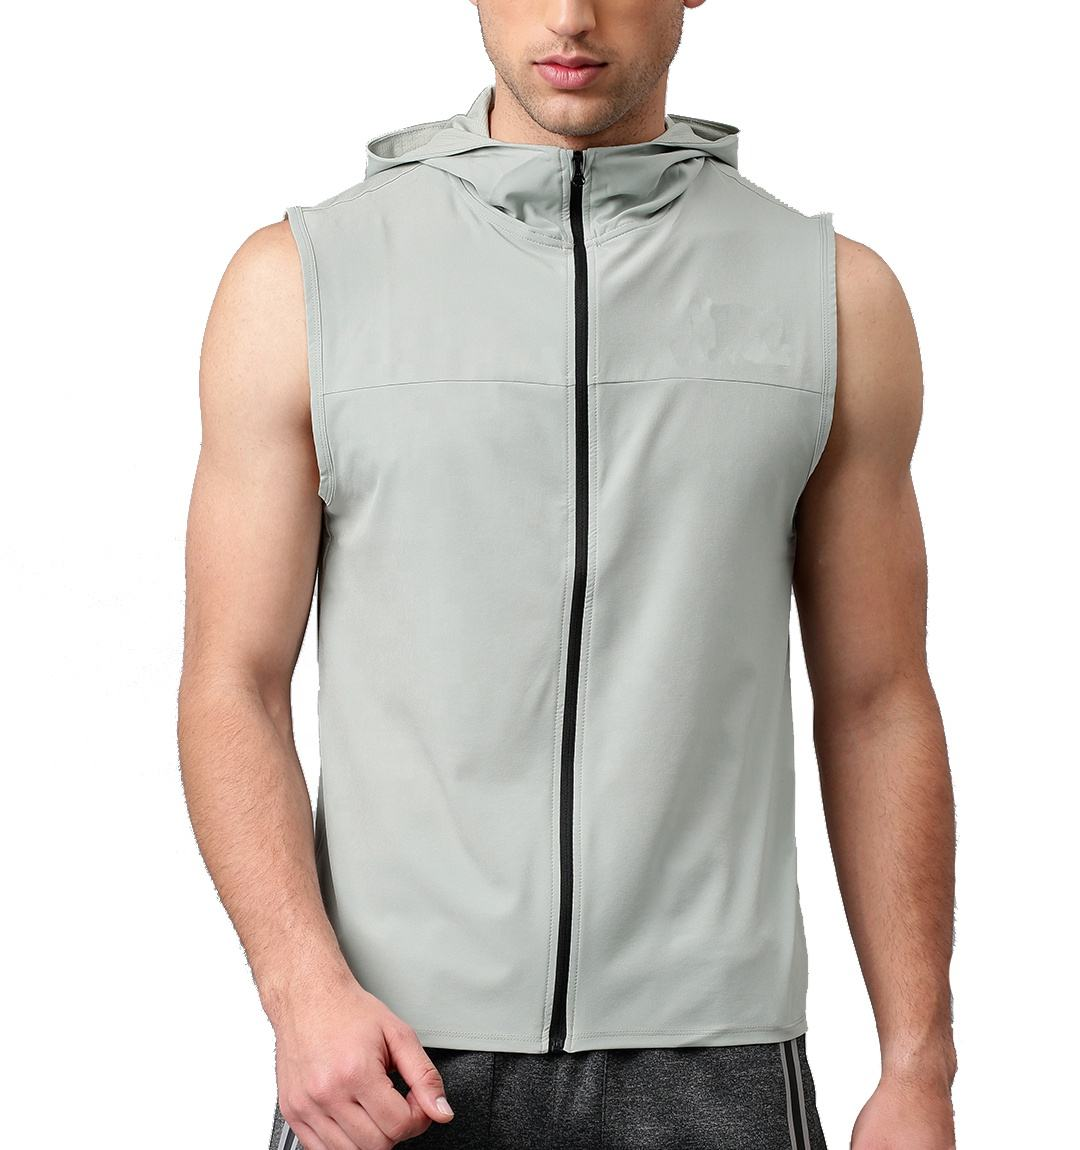 2020 Customized Quick Dry Zipper Up Jacket Summer Breathable Sleeveless Hoodie Jacket for Men